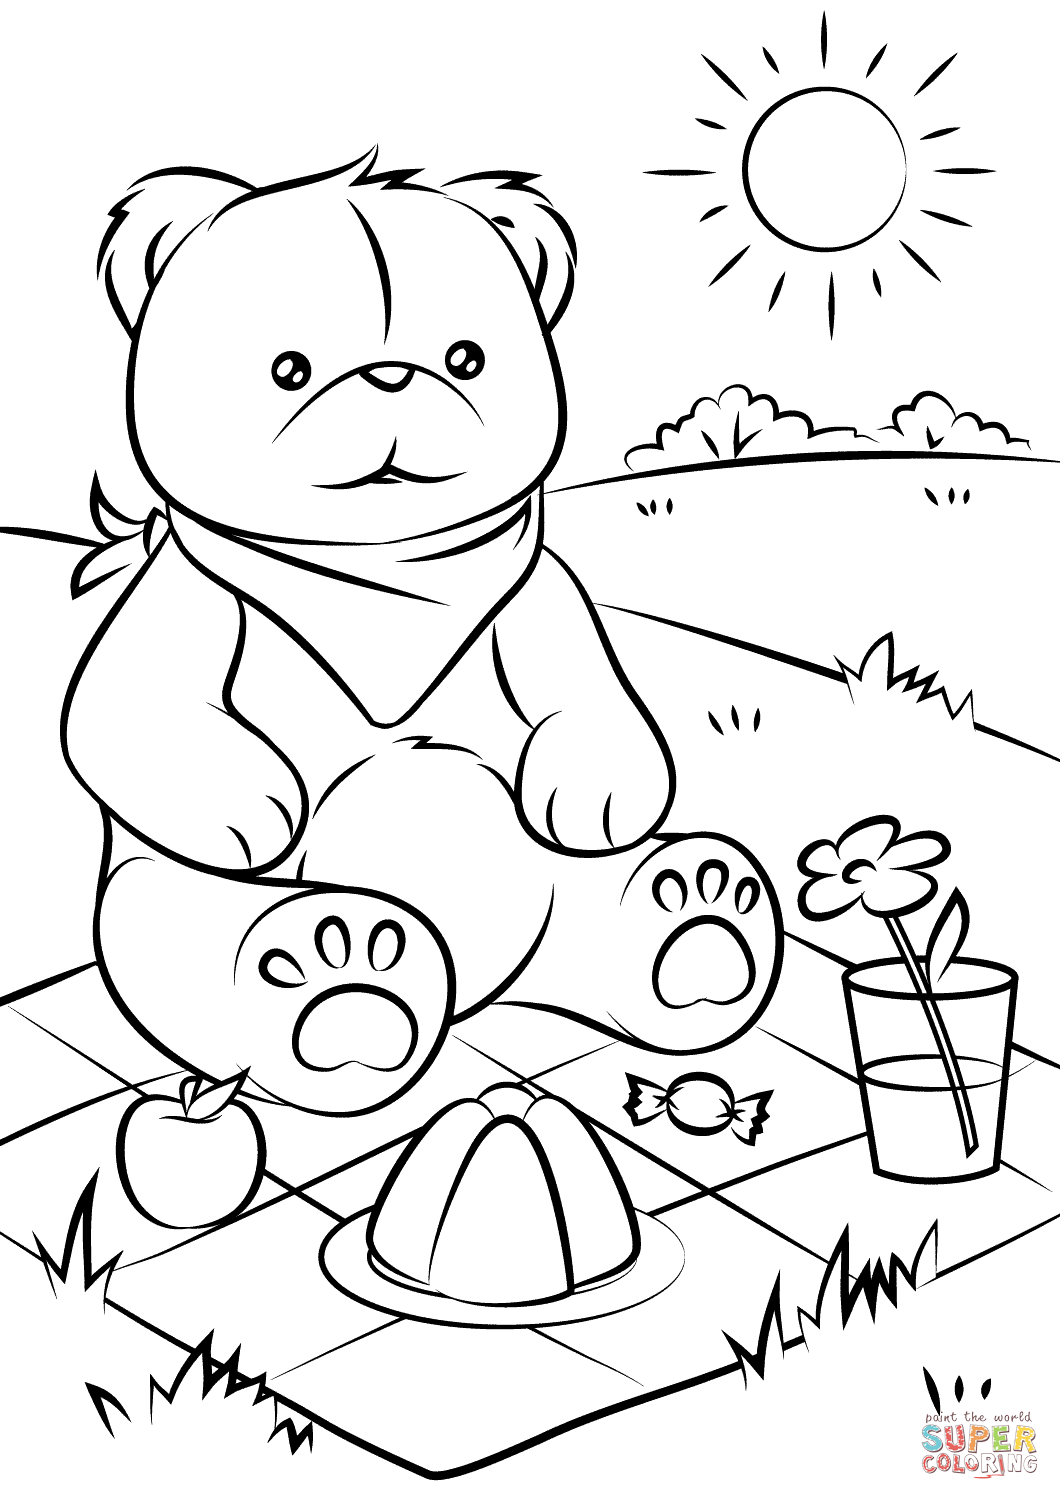 Teddy Bears Picnic Coloring Page Free Printable Coloring Pages Teddy Bear Coloring Pages Bear Coloring Pages Coloring Pages